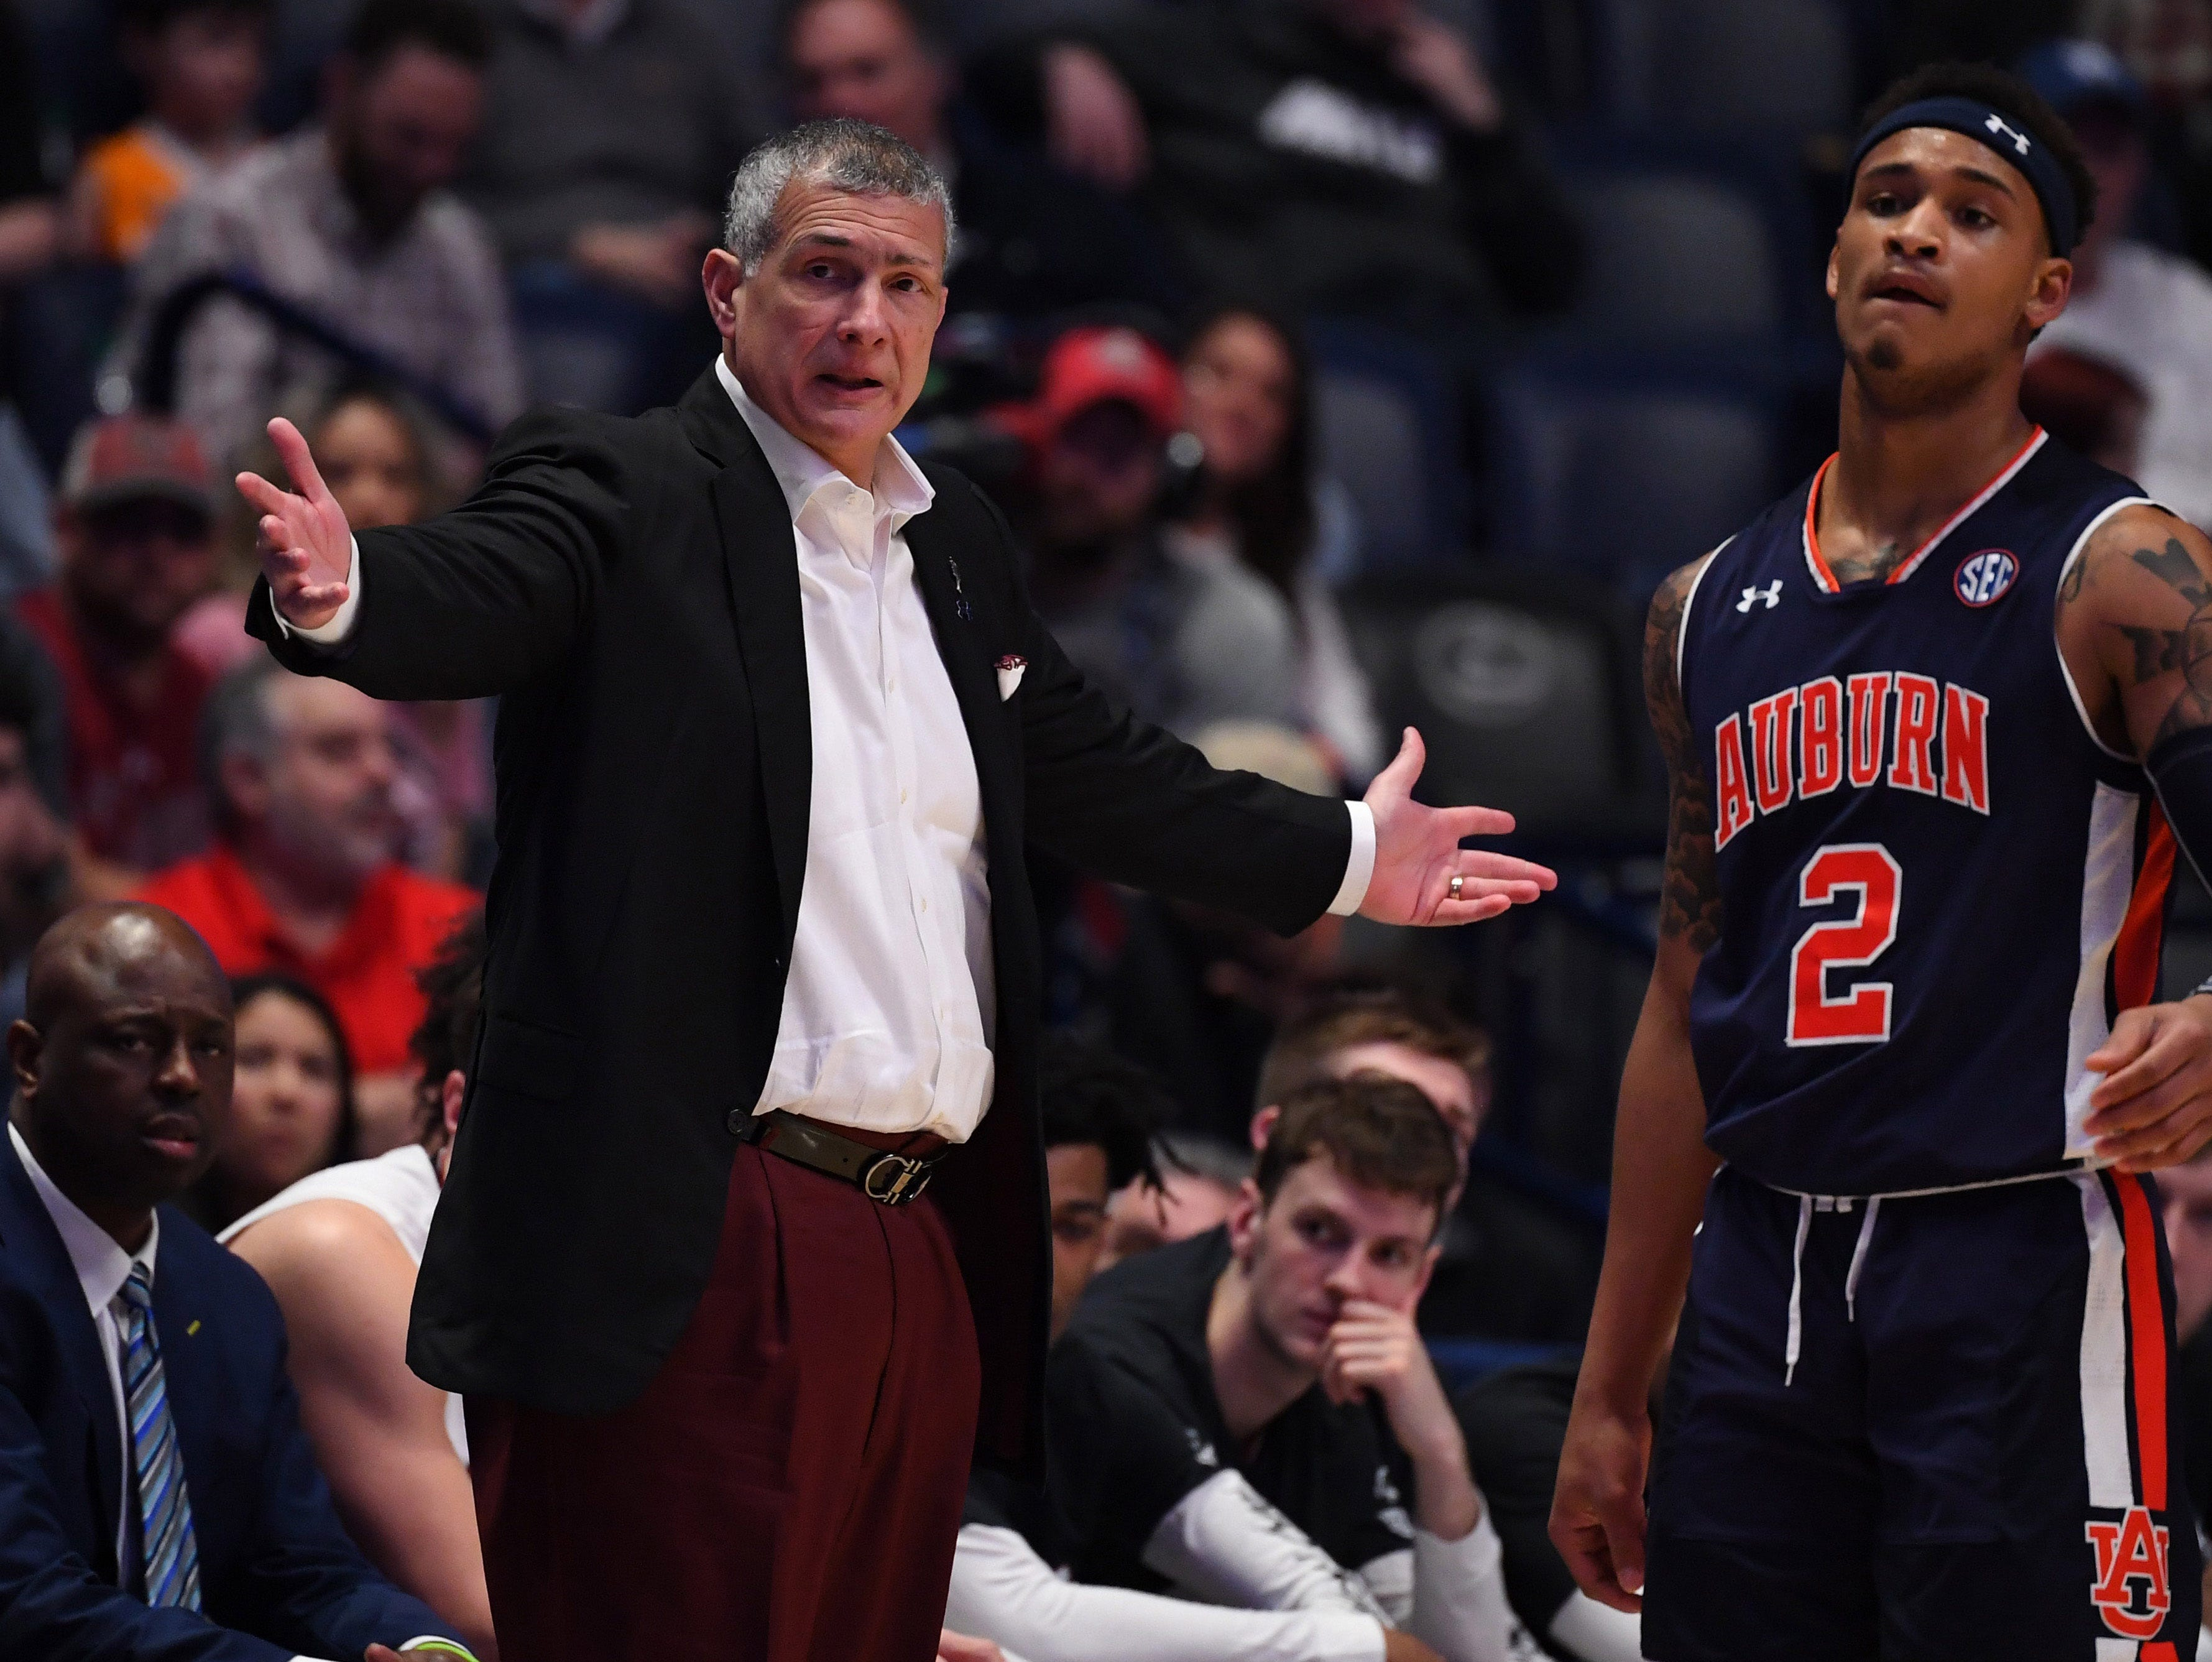 Mar 15, 2019; Nashville, TN, USA; South Carolina Gamecocks head coach Frank Martin (left) questions a call against the Auburn Tigers during the first half of the SEC conference tournament at Bridgestone Arena. Mandatory Credit: Christopher Hanewinckel-USA TODAY Sports